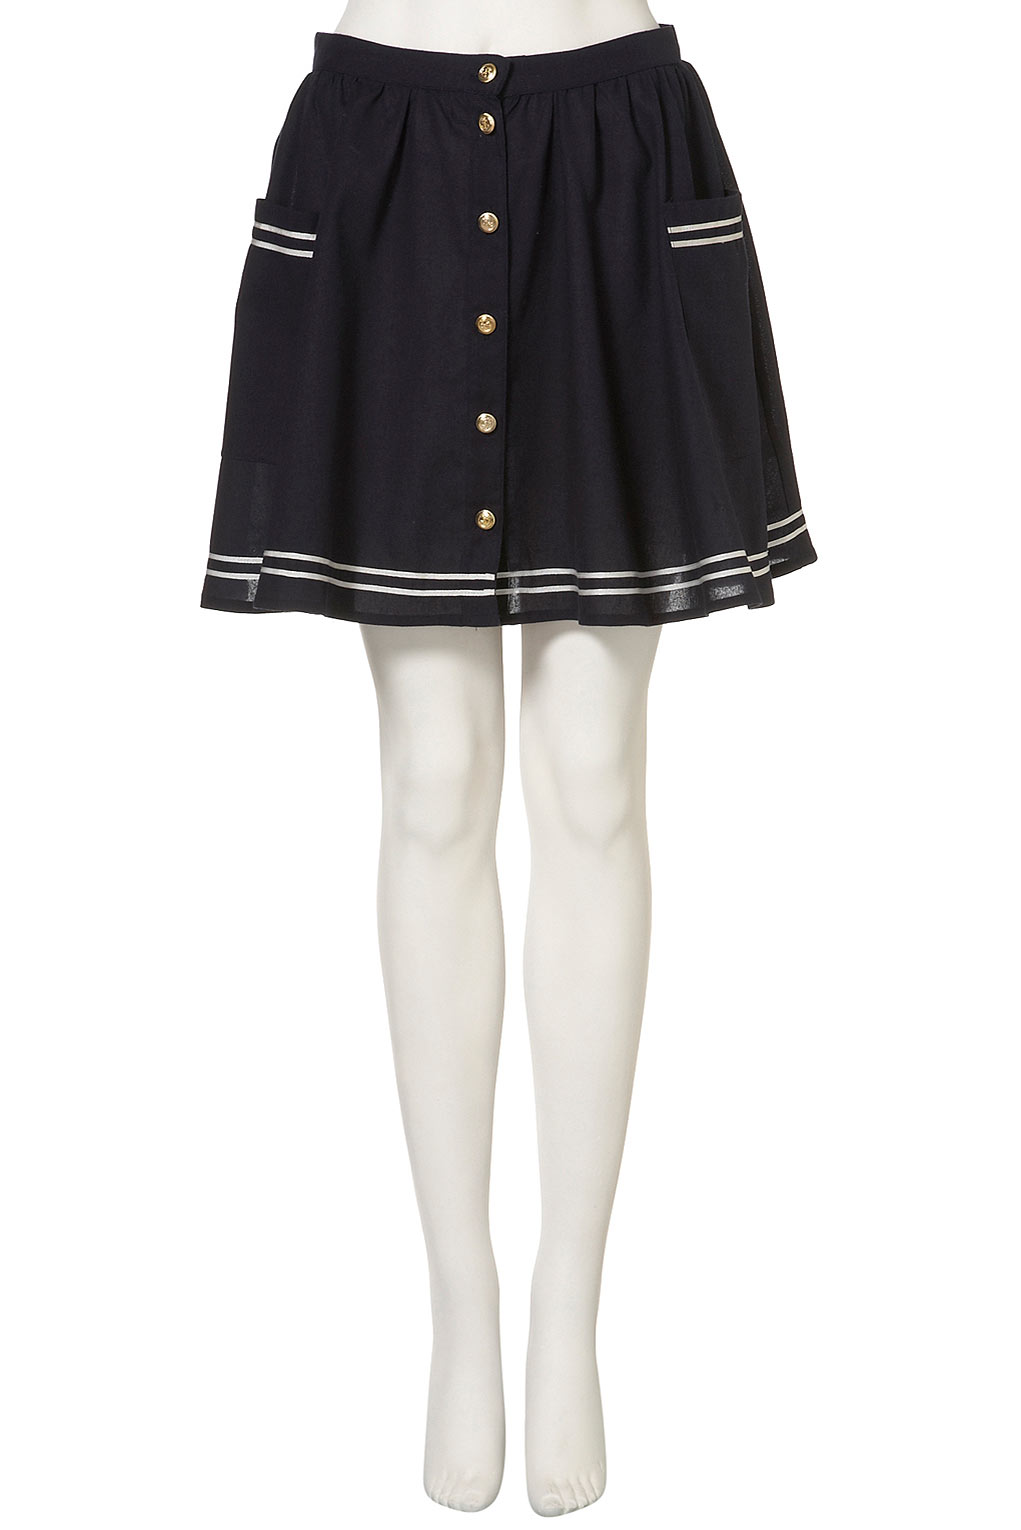 Sailor Moon Skirt Is A Size Small And Fits A Size The Skirt Is Lined And Is In Very Good Condition. All Items Come From A Smoke Free Home.